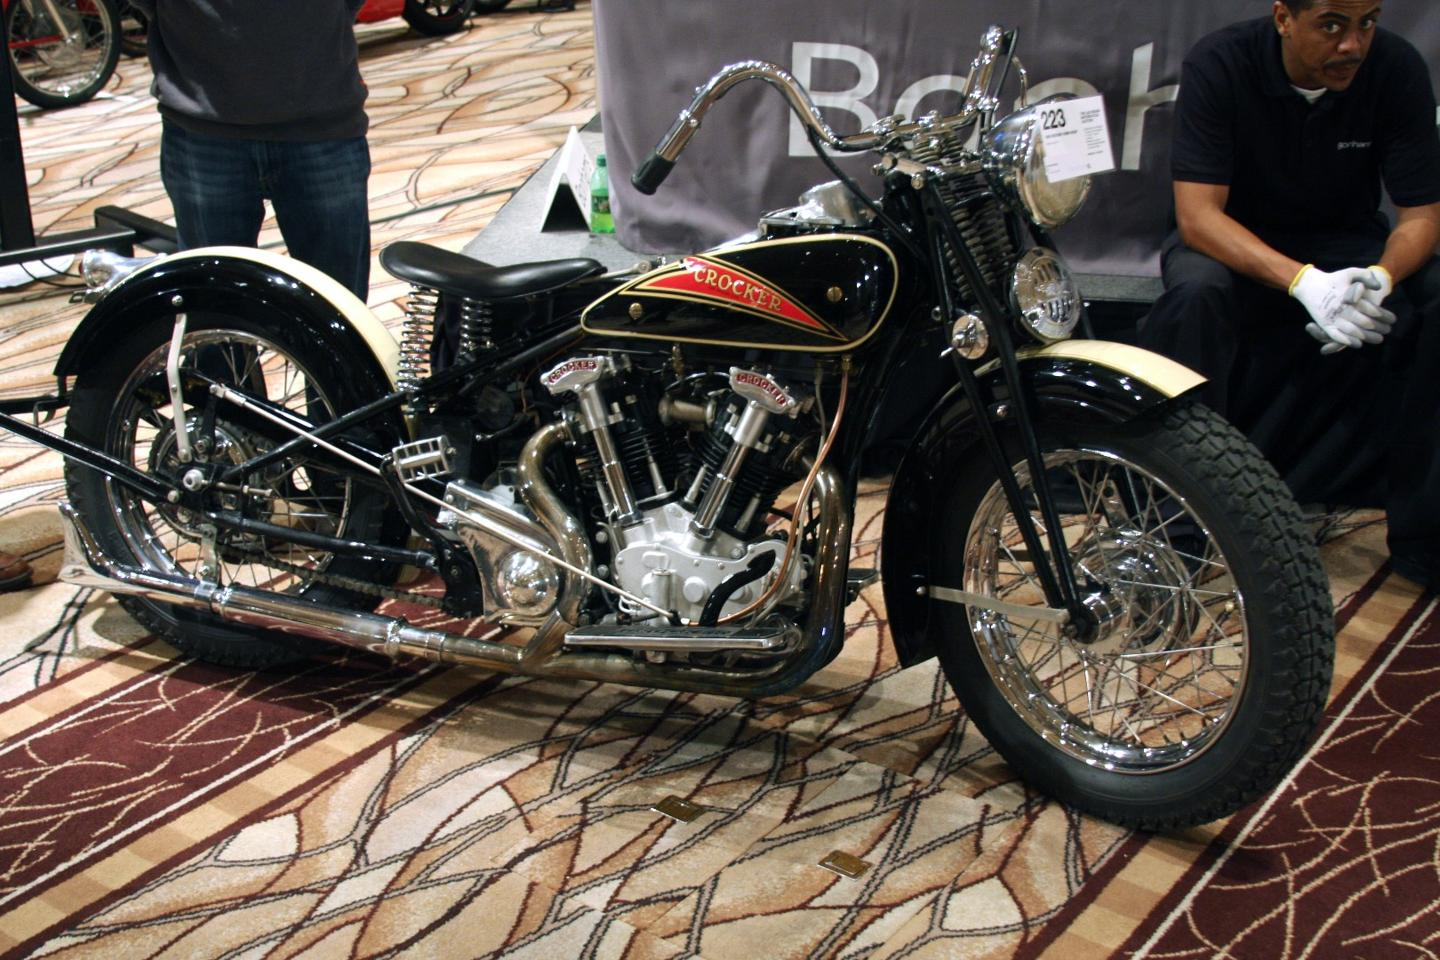 Great things were expected at Bonhams of the aboveCrocker. The 1936 Crocker 'hemi head' was expected to fetch between $500,000 and $600,000. Bidding started at $150,000 and reached $360,000 before failing to advance any further.